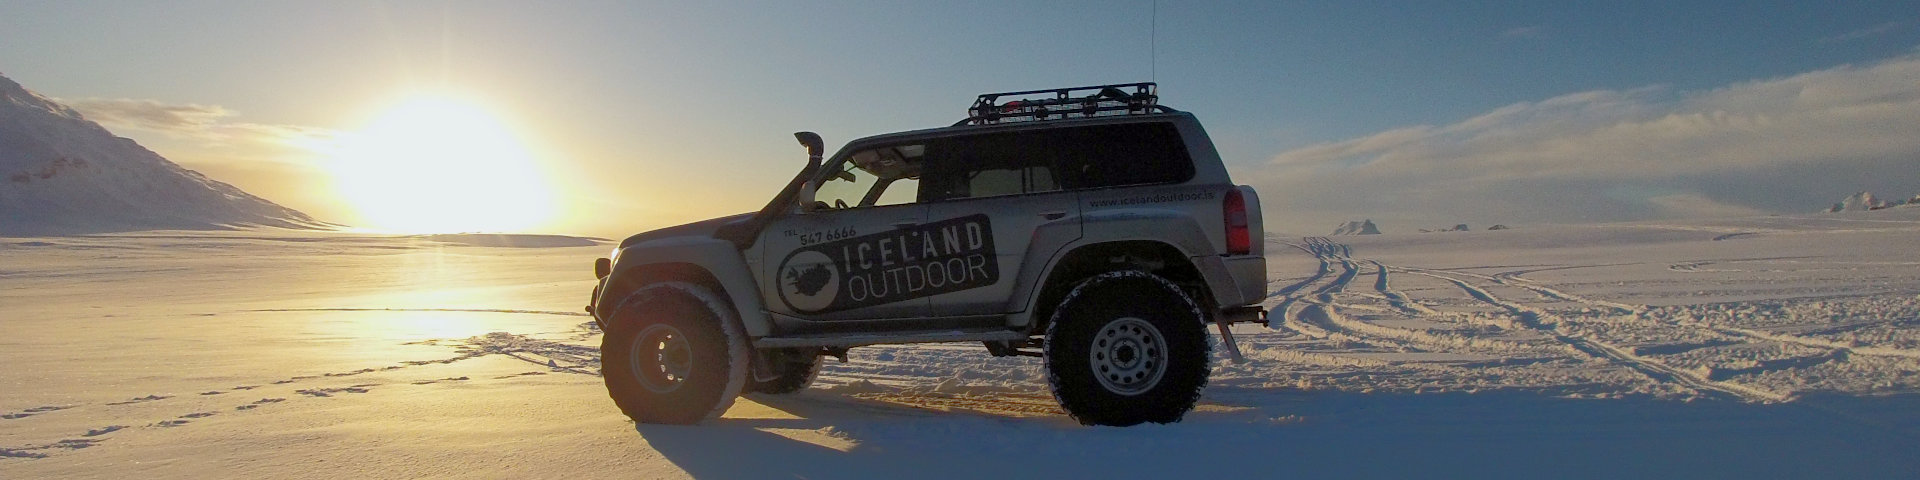 Golden Circle & Glacier, Iceland Outdoor, Private Super Jeep Tour, Langjökull Glacier.